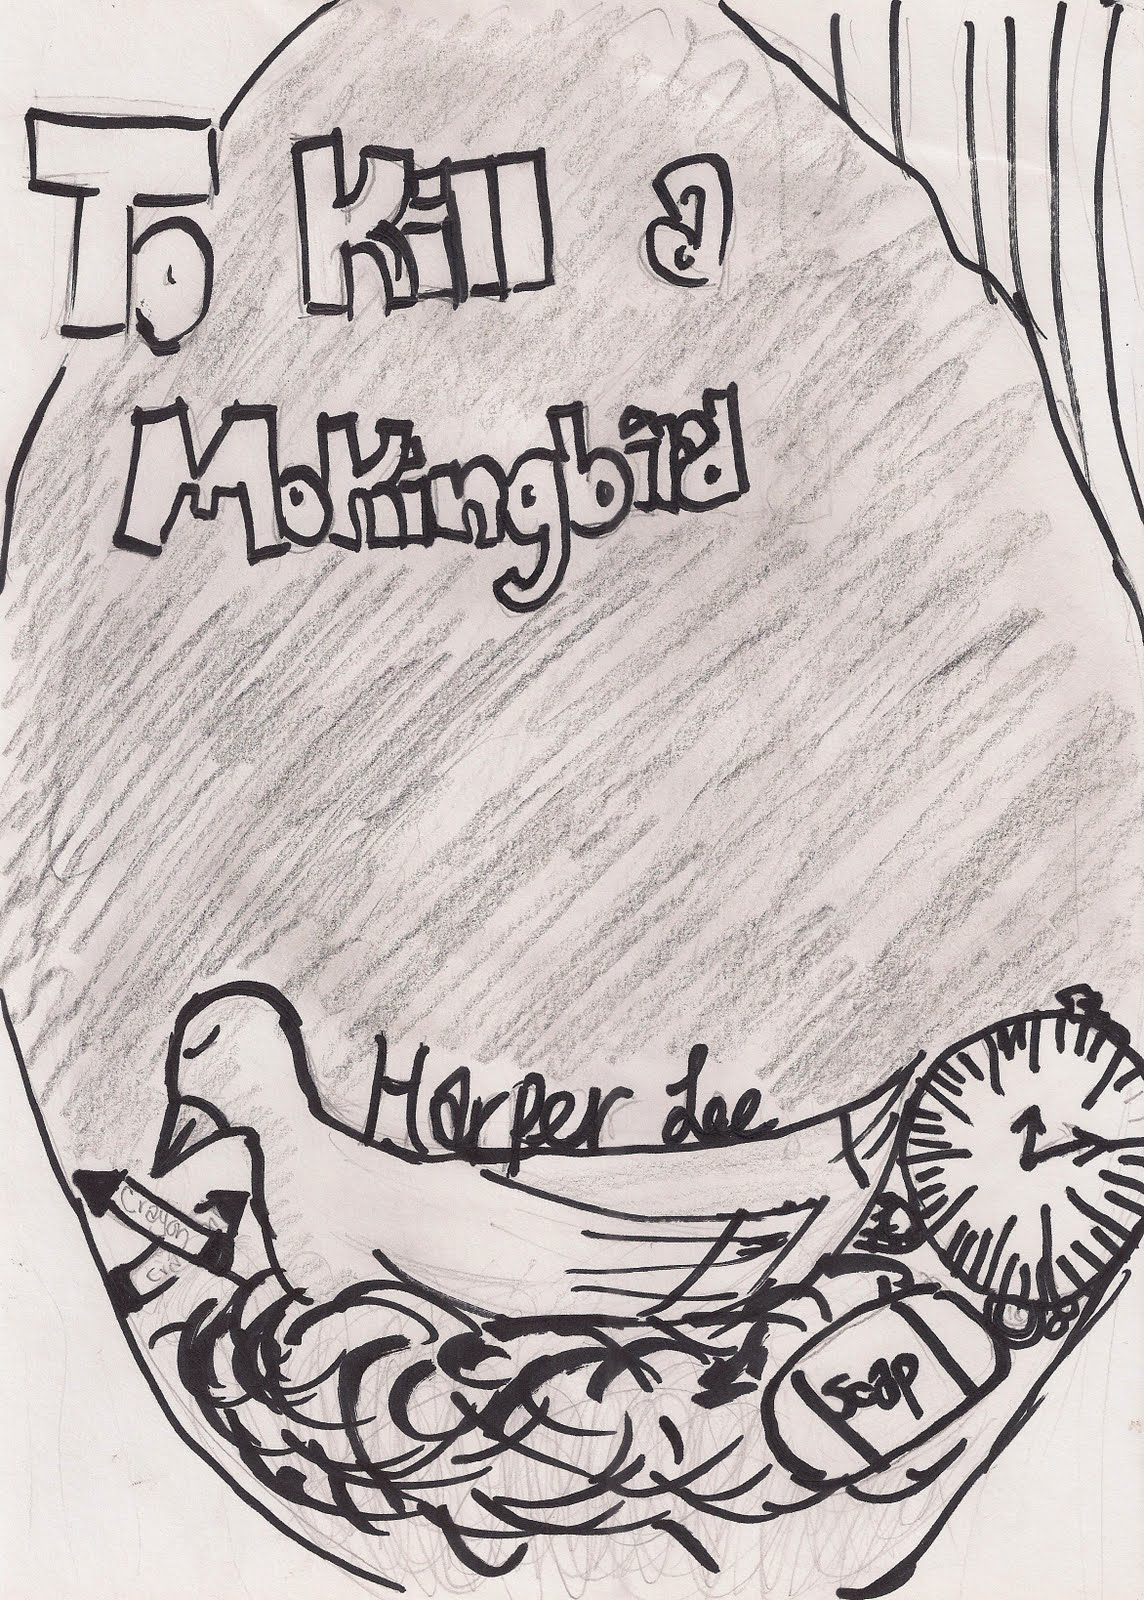 to kill a mockingbird 2 10/2 books needed everyday starting monday the 2nd read to kill a mockingbird (tkm) ch 1-3 and complete dj entries by monday the 9th this is an ongoing assignment there will be a quiz wednesday the 11th on these chapters 10/2-6 essay prep 10/2 brainstorm (orange handout) 10/3 outline 10/4 rough draft.